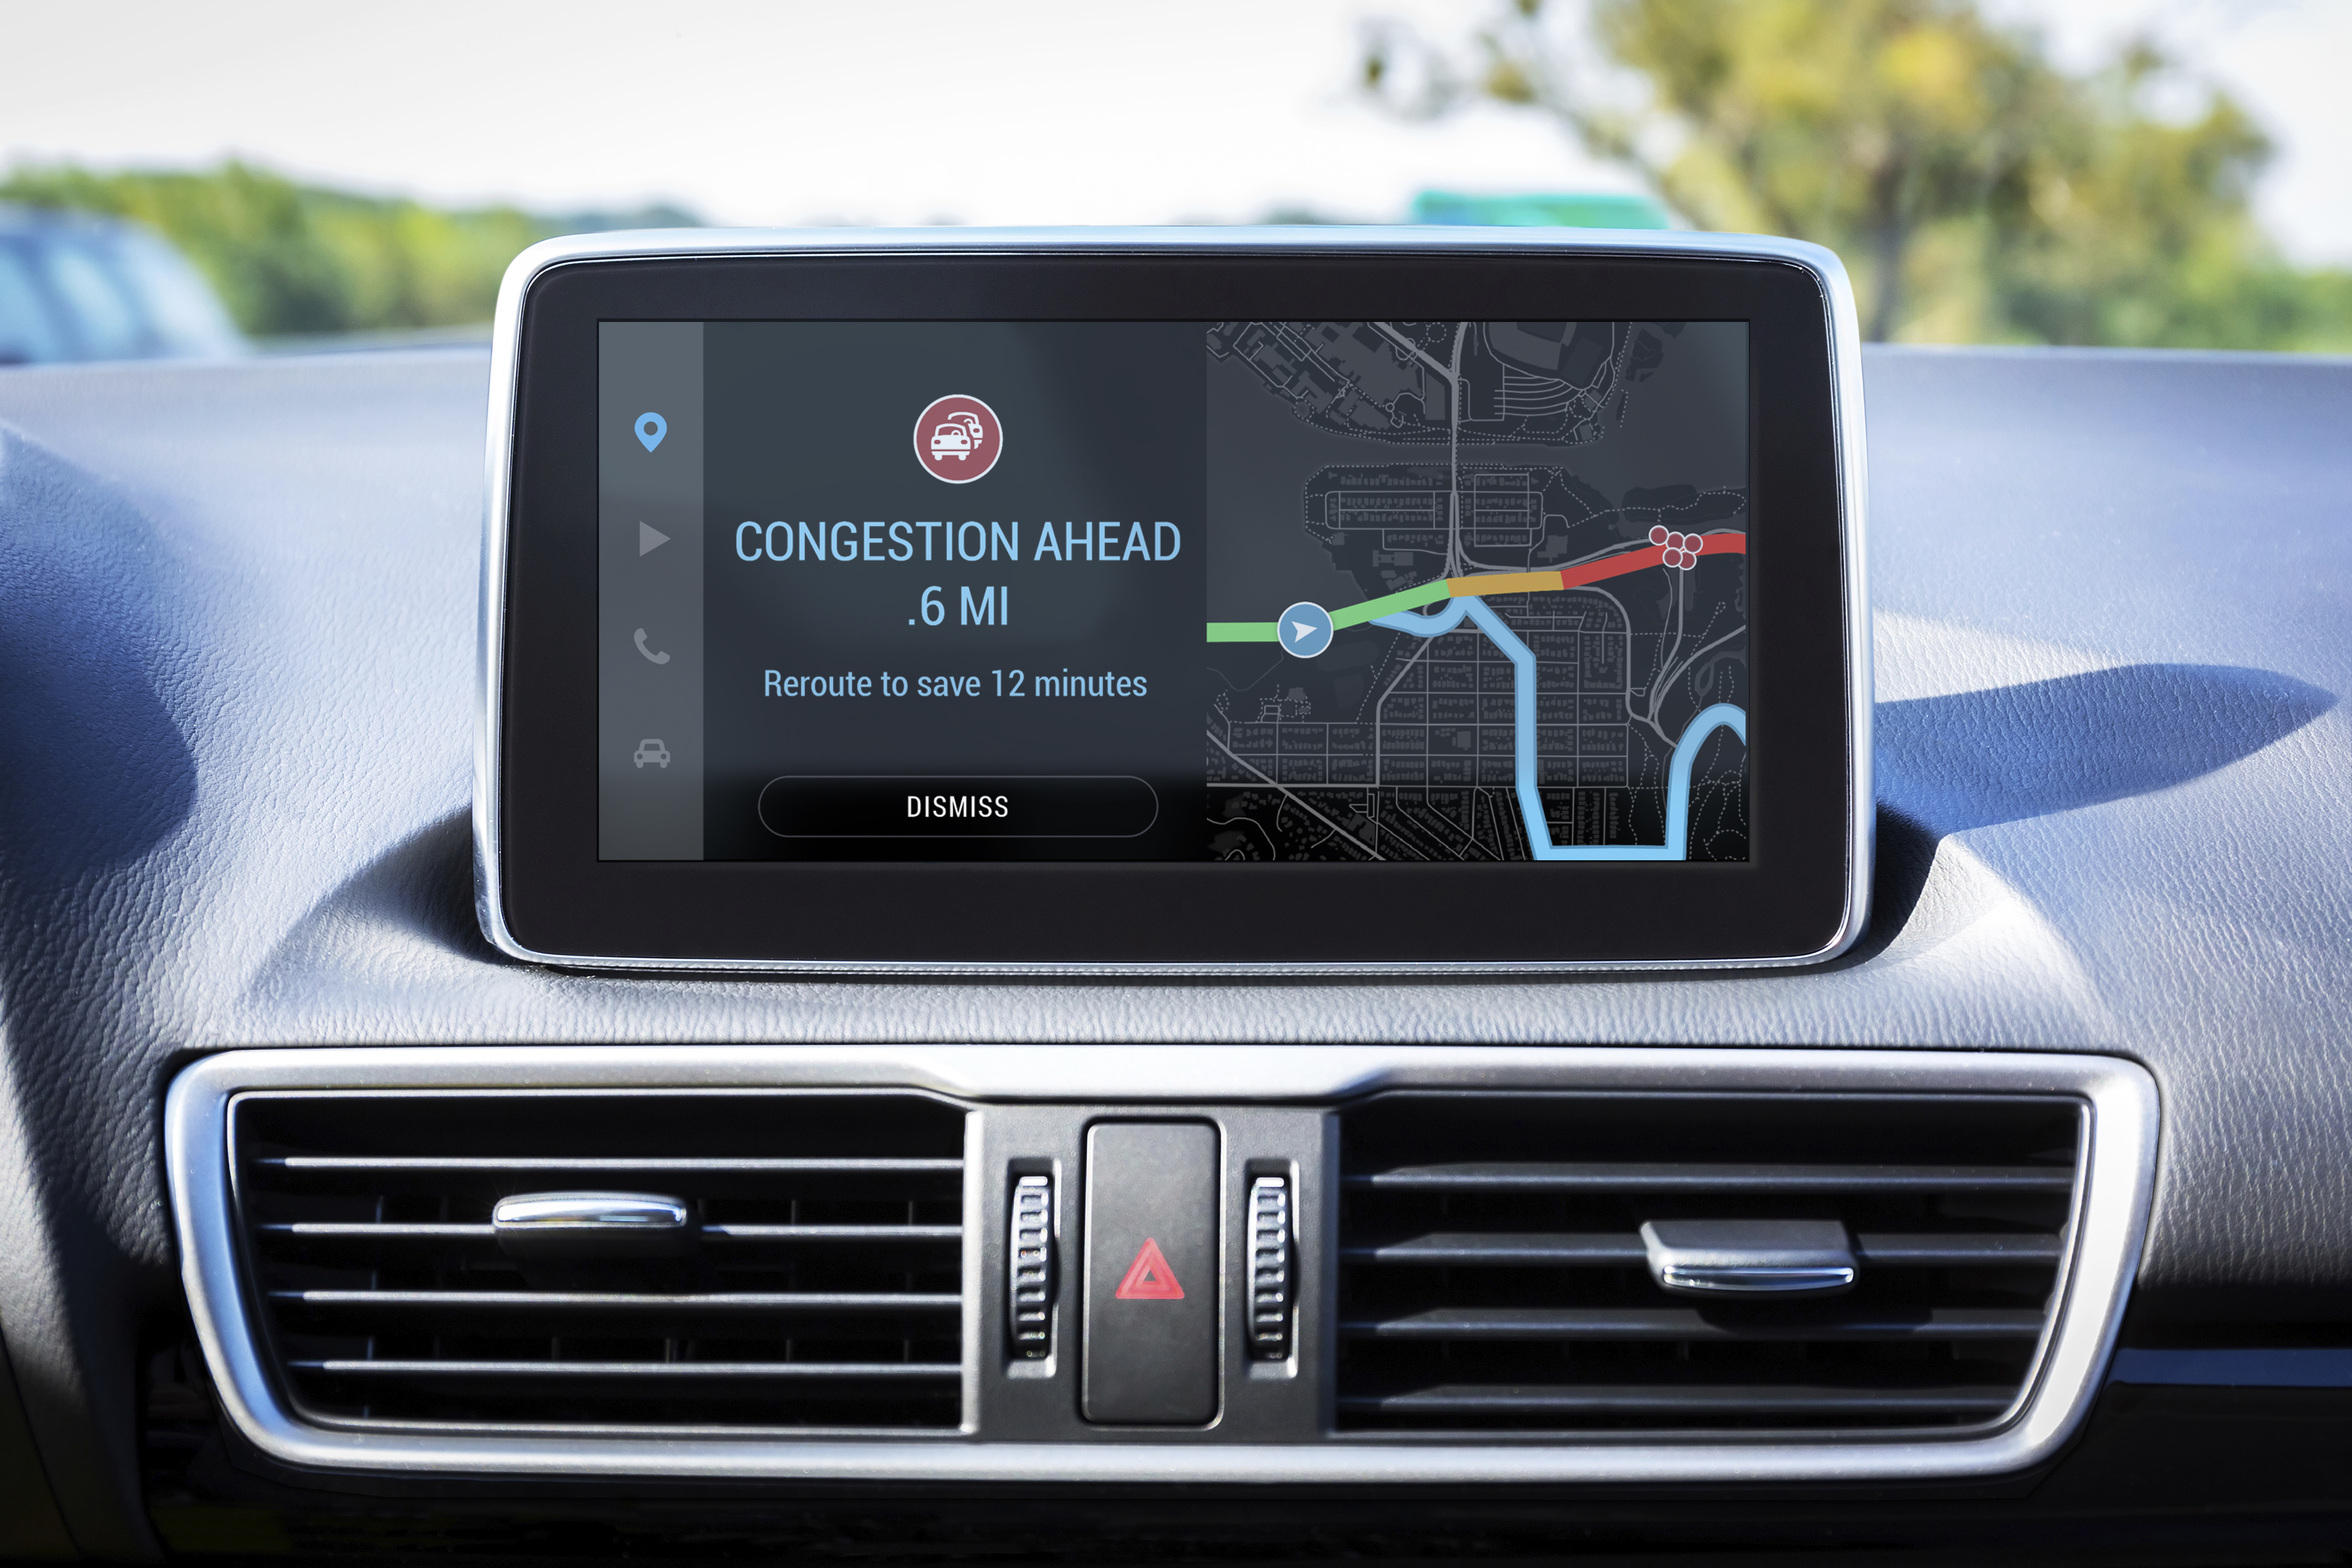 Inrix has acquired OpenCar, which developed an in-car app platform that could rival Apple and Google's systems.